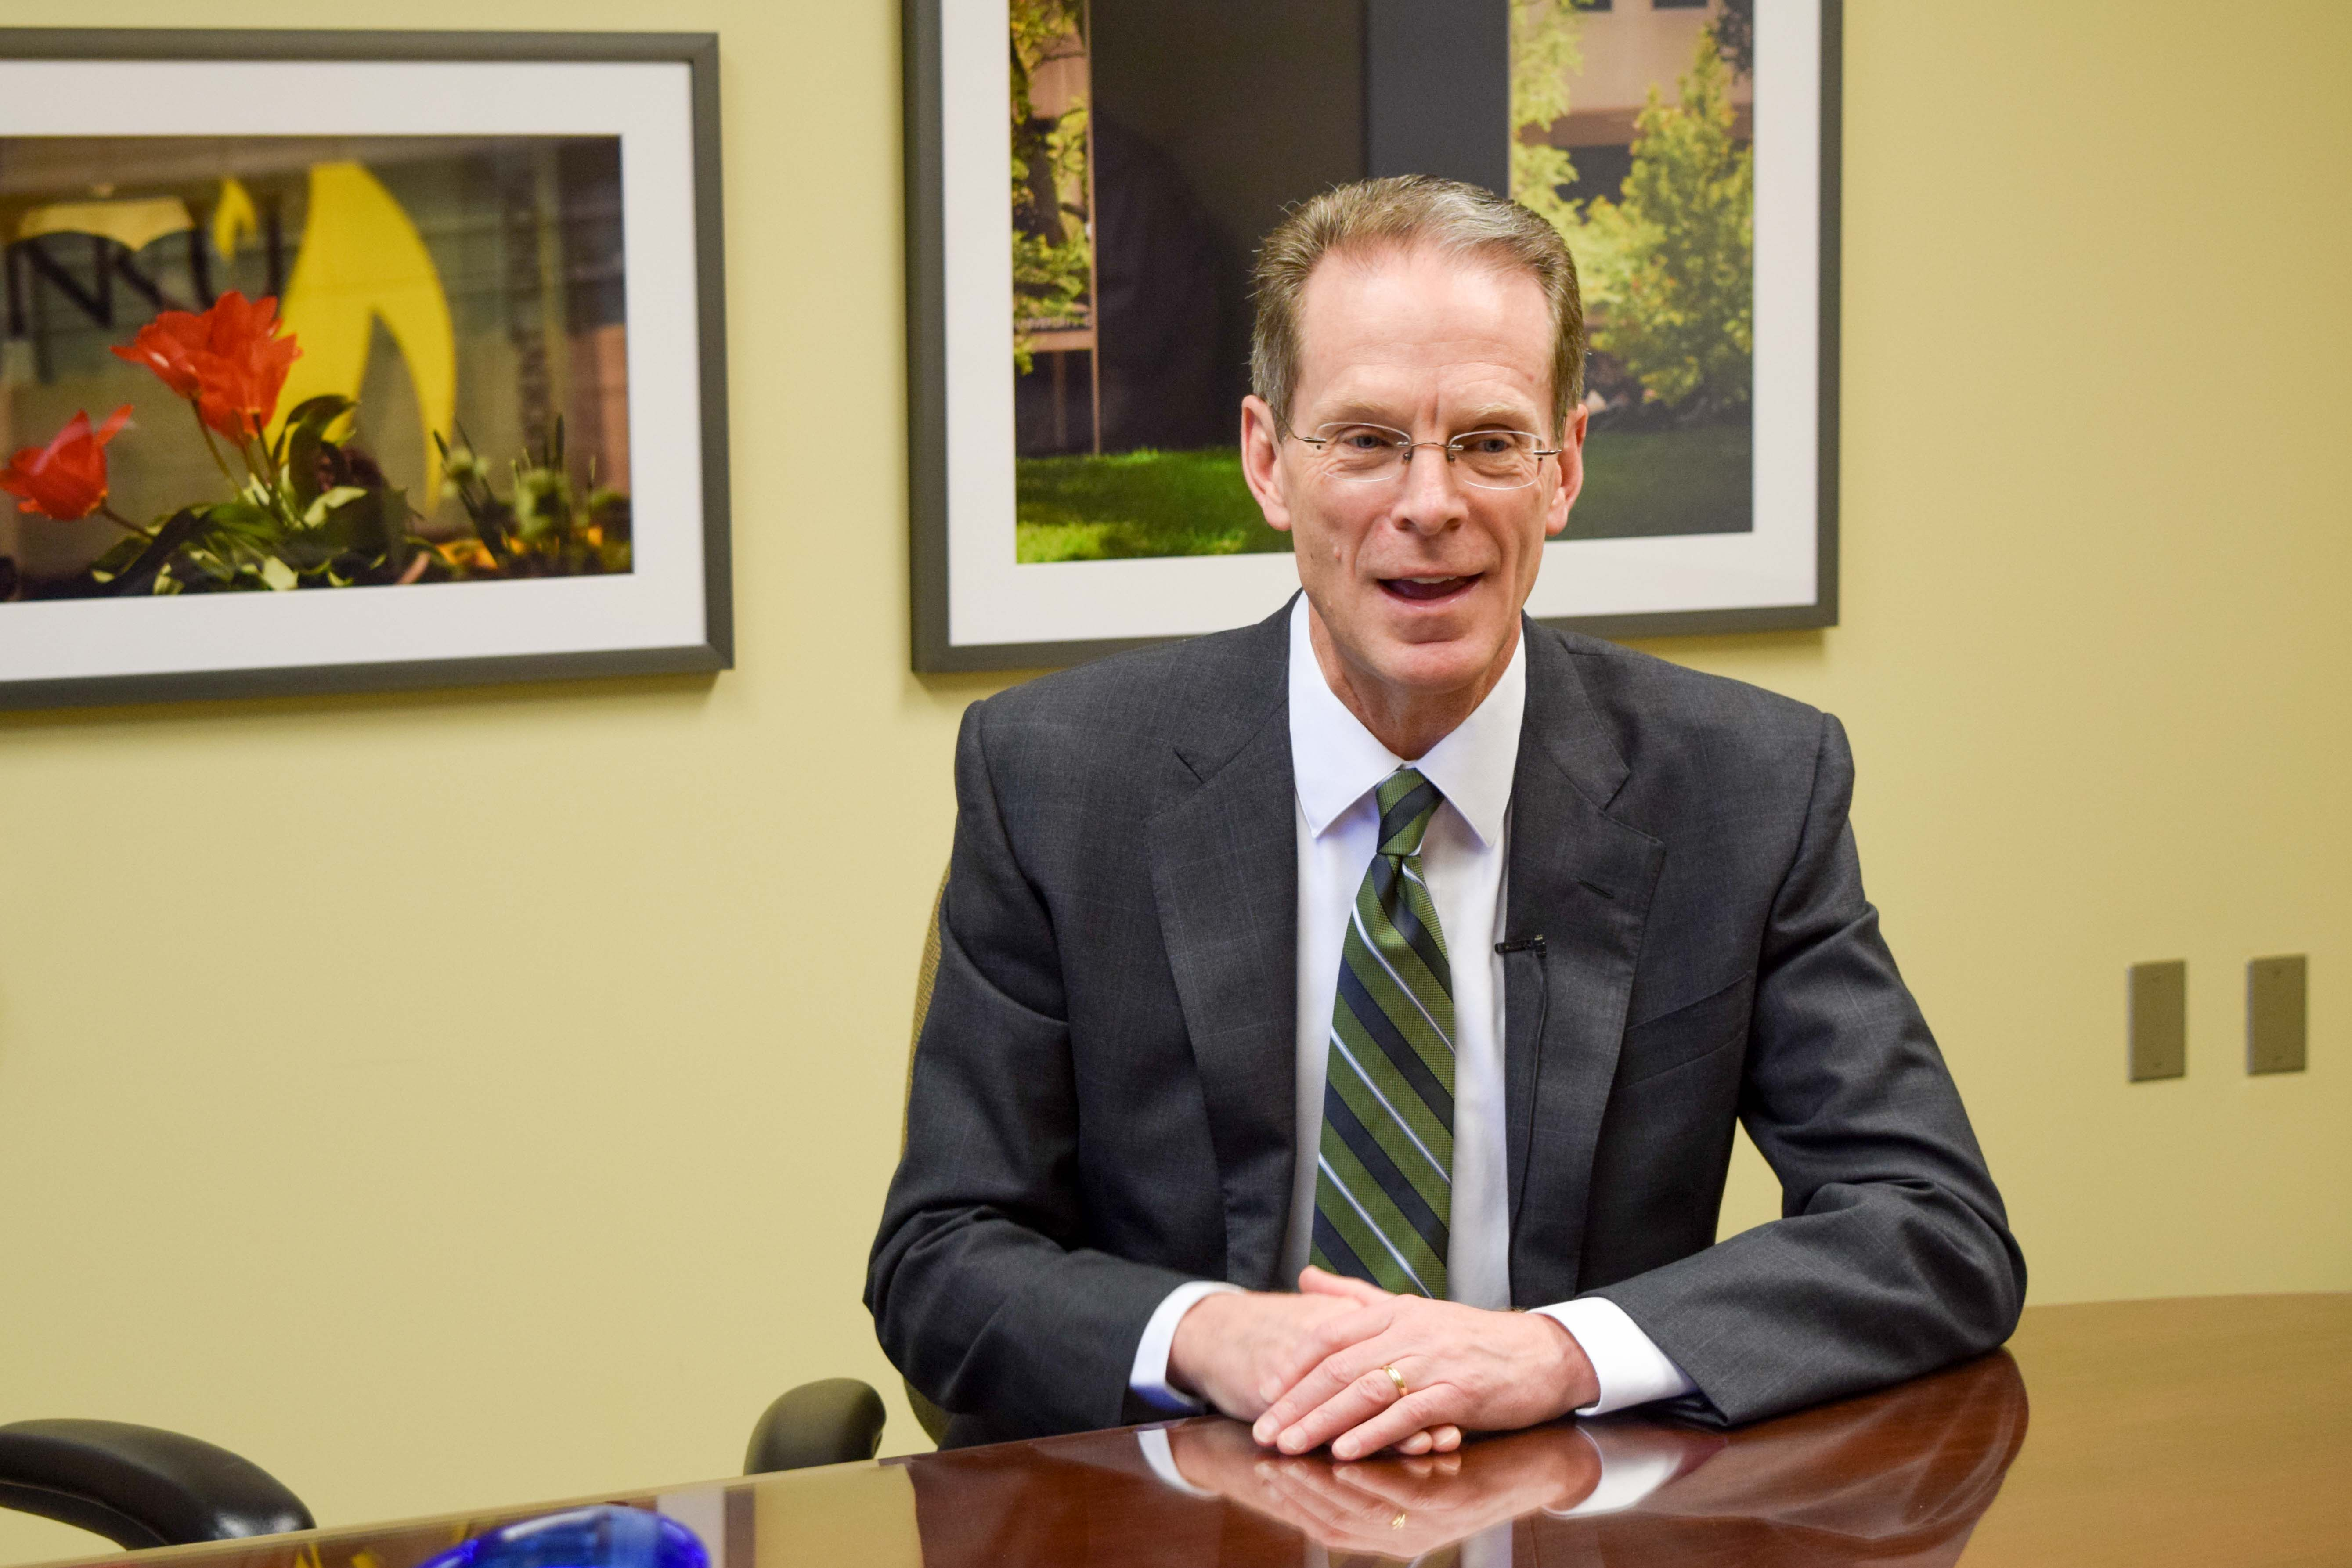 NKU President Geoffrey Mearns discussed some of the things during his tenure that he was most proud of during an interview with The Northerner earlier this week.